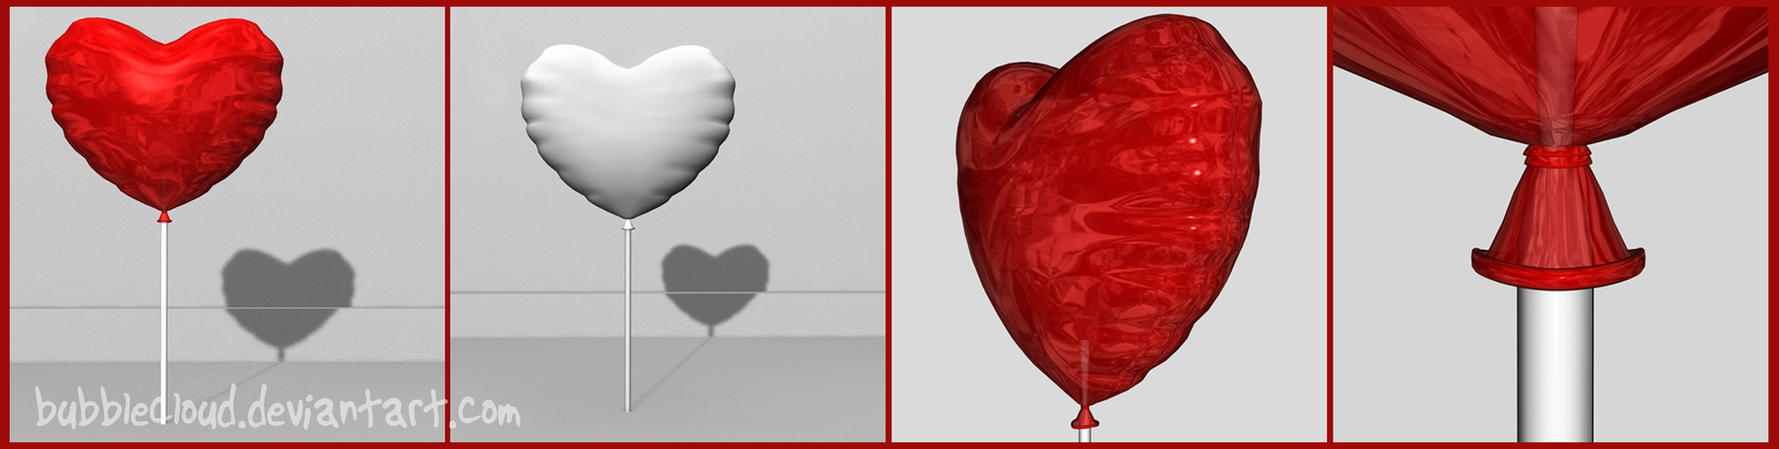 Heart Balloon Free 3D model by BubbleCloud